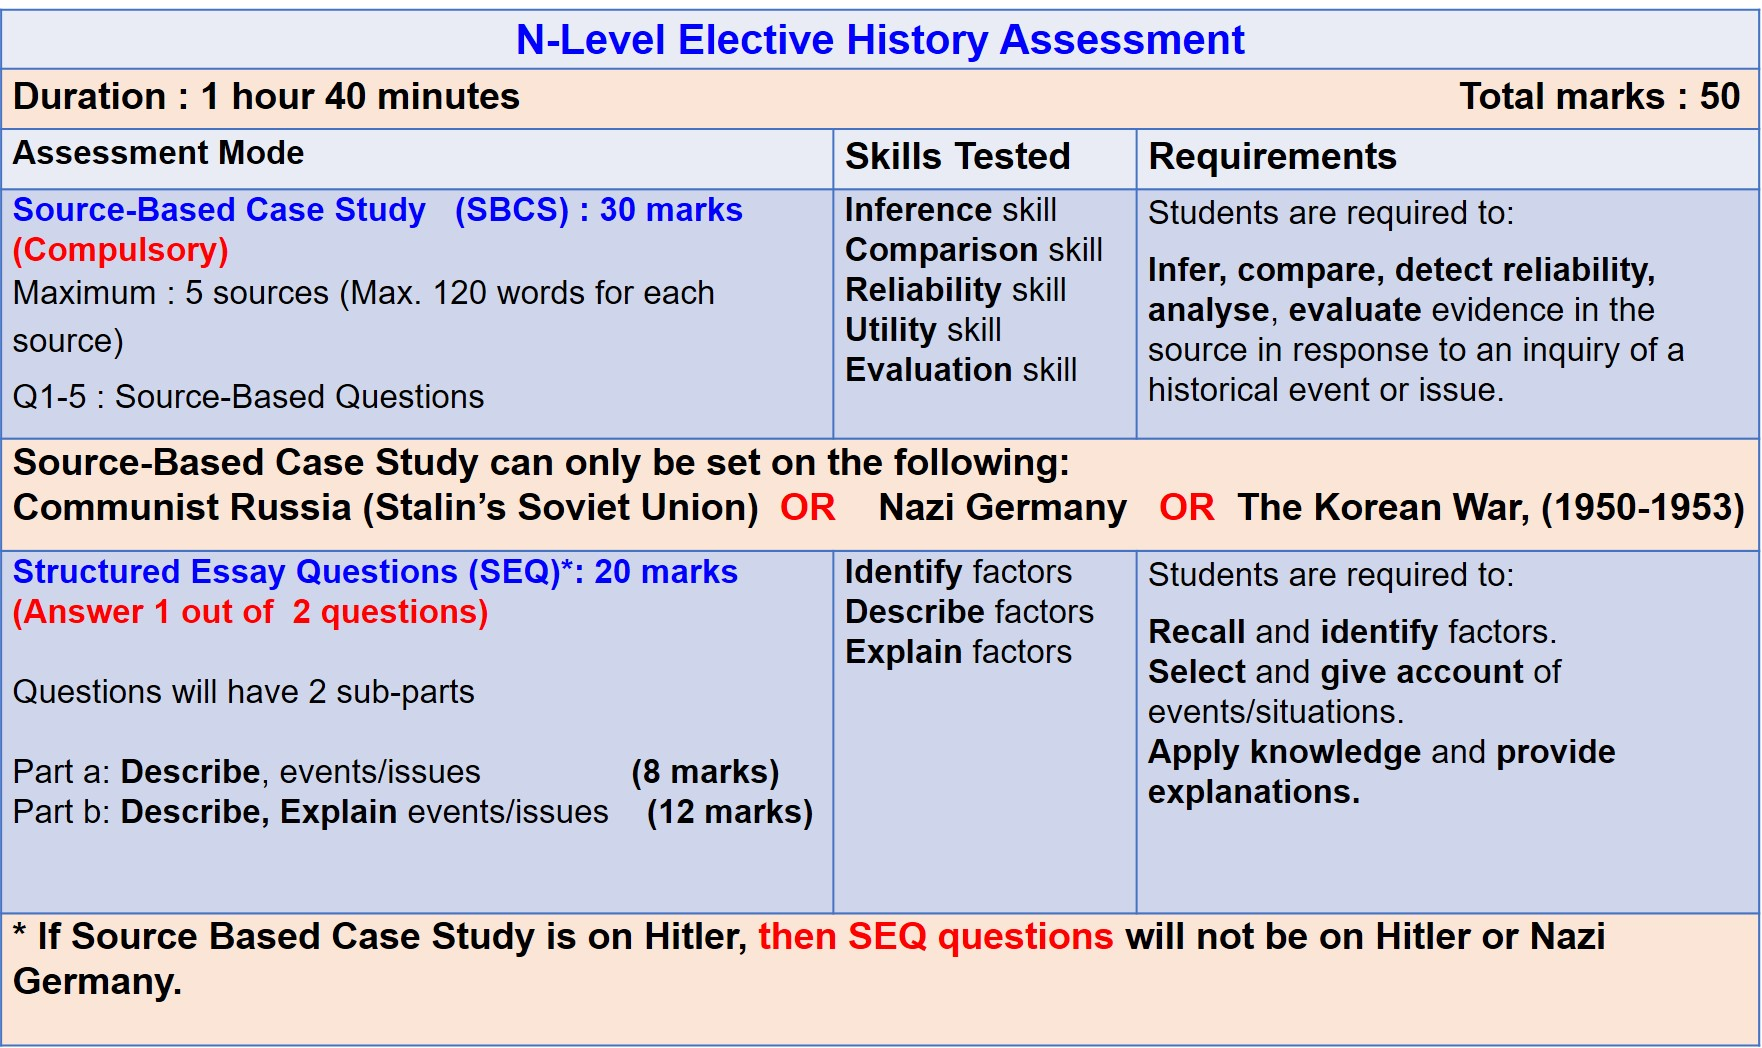 n-level assessment format